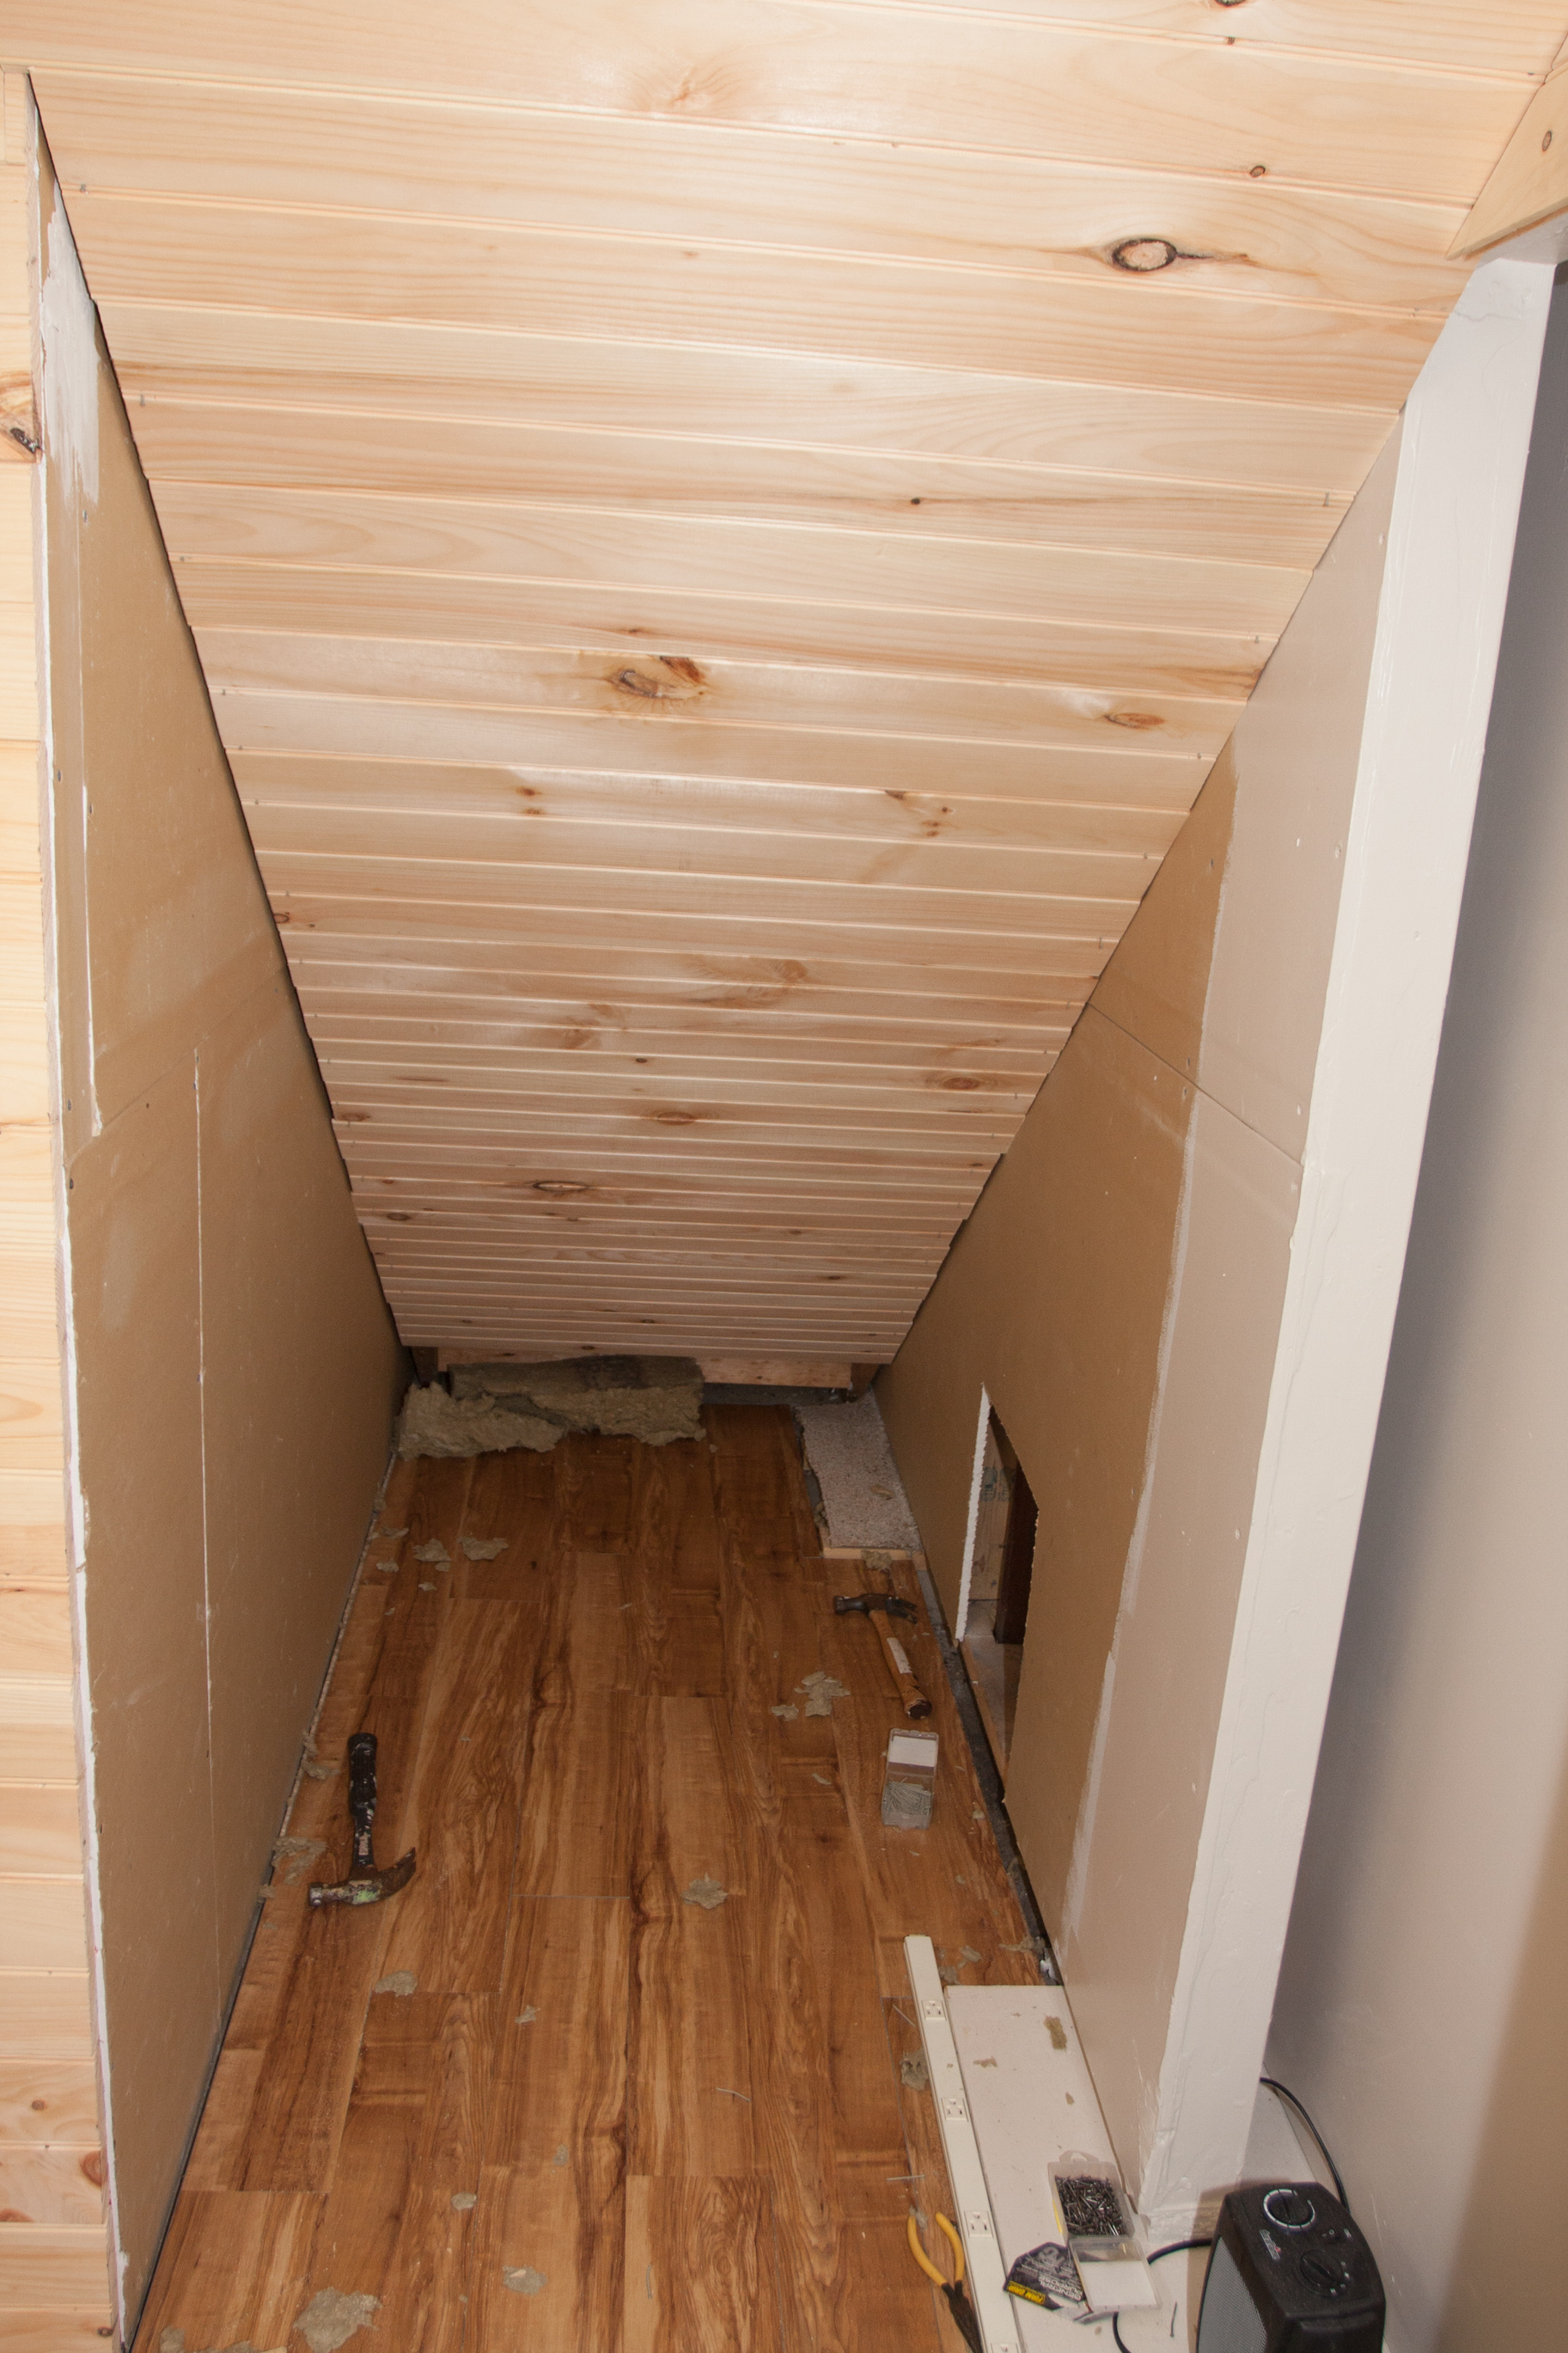 Insulation And Paneling Under The Stairs Dzplanet